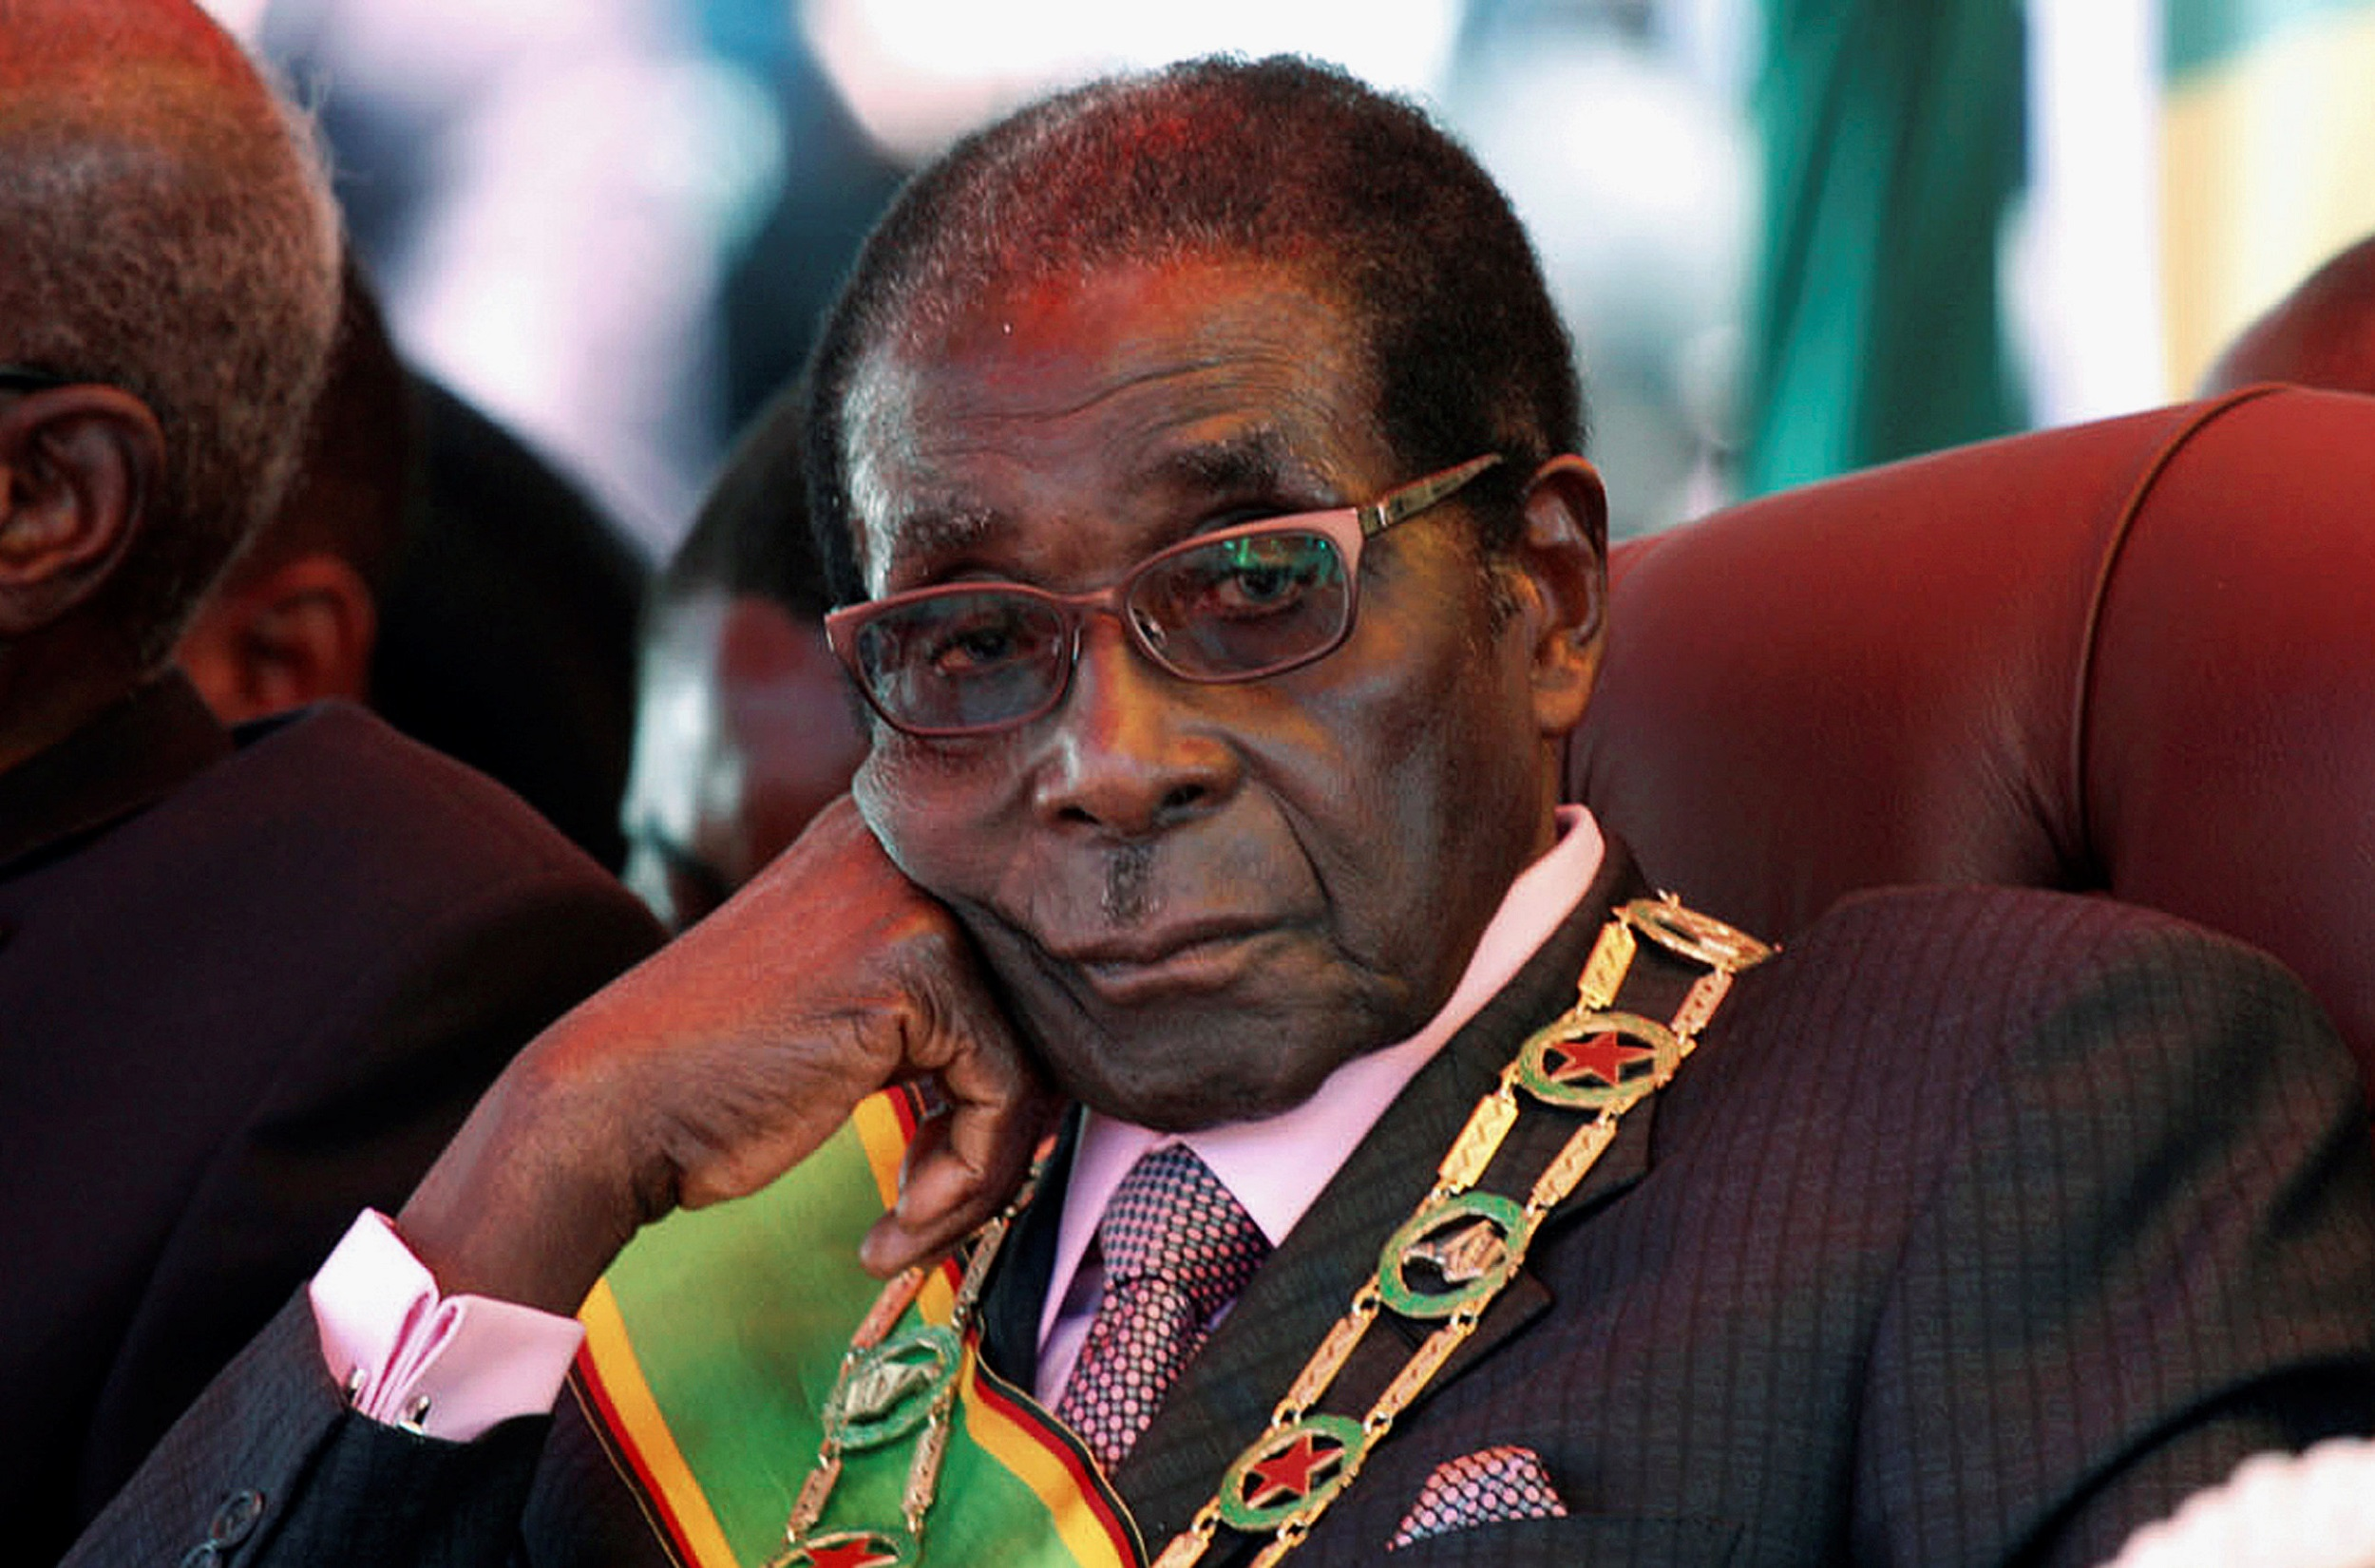 Mugabe's body heading home to Zimbabwe for mourning, burial